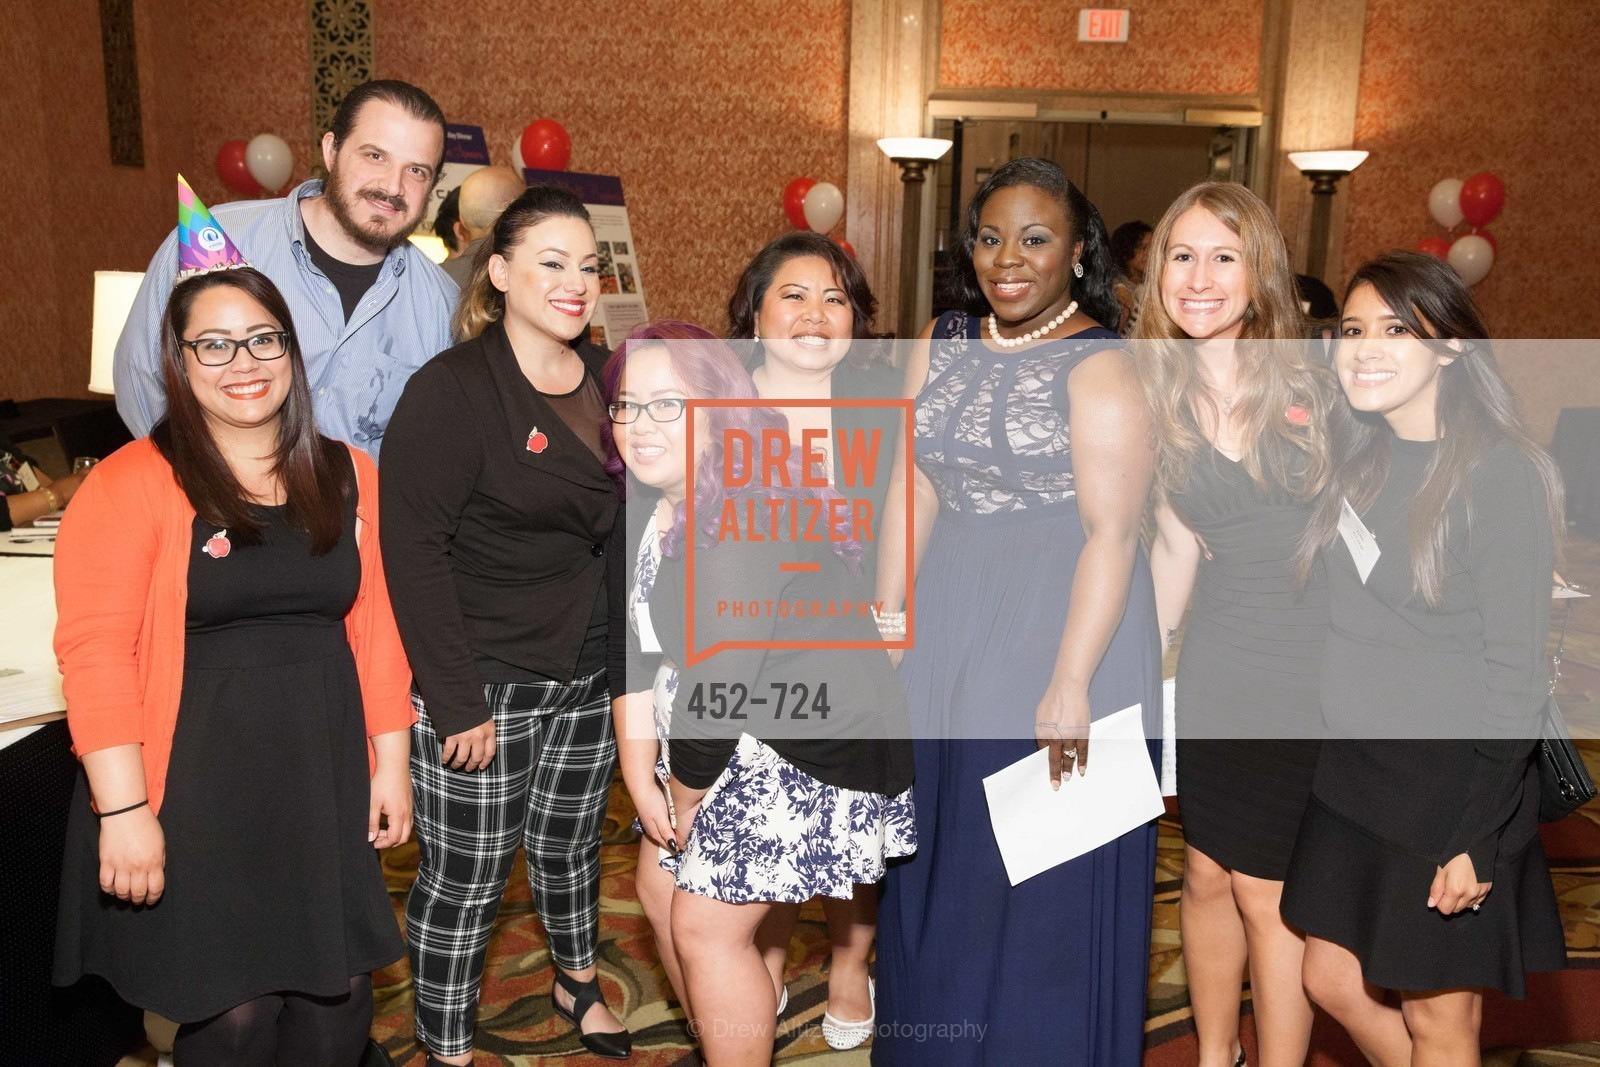 Claire Marie Genese, William Jensen, Olga Cordona, Tanya Chanthavong, Nancy Chanthavong, Hayley Caldwell, Shatae Jones, Julie Alcazar, TNDC's 34th Annual Birthday Dinner, US, May 13th, 2015,Drew Altizer, Drew Altizer Photography, full-service agency, private events, San Francisco photographer, photographer california